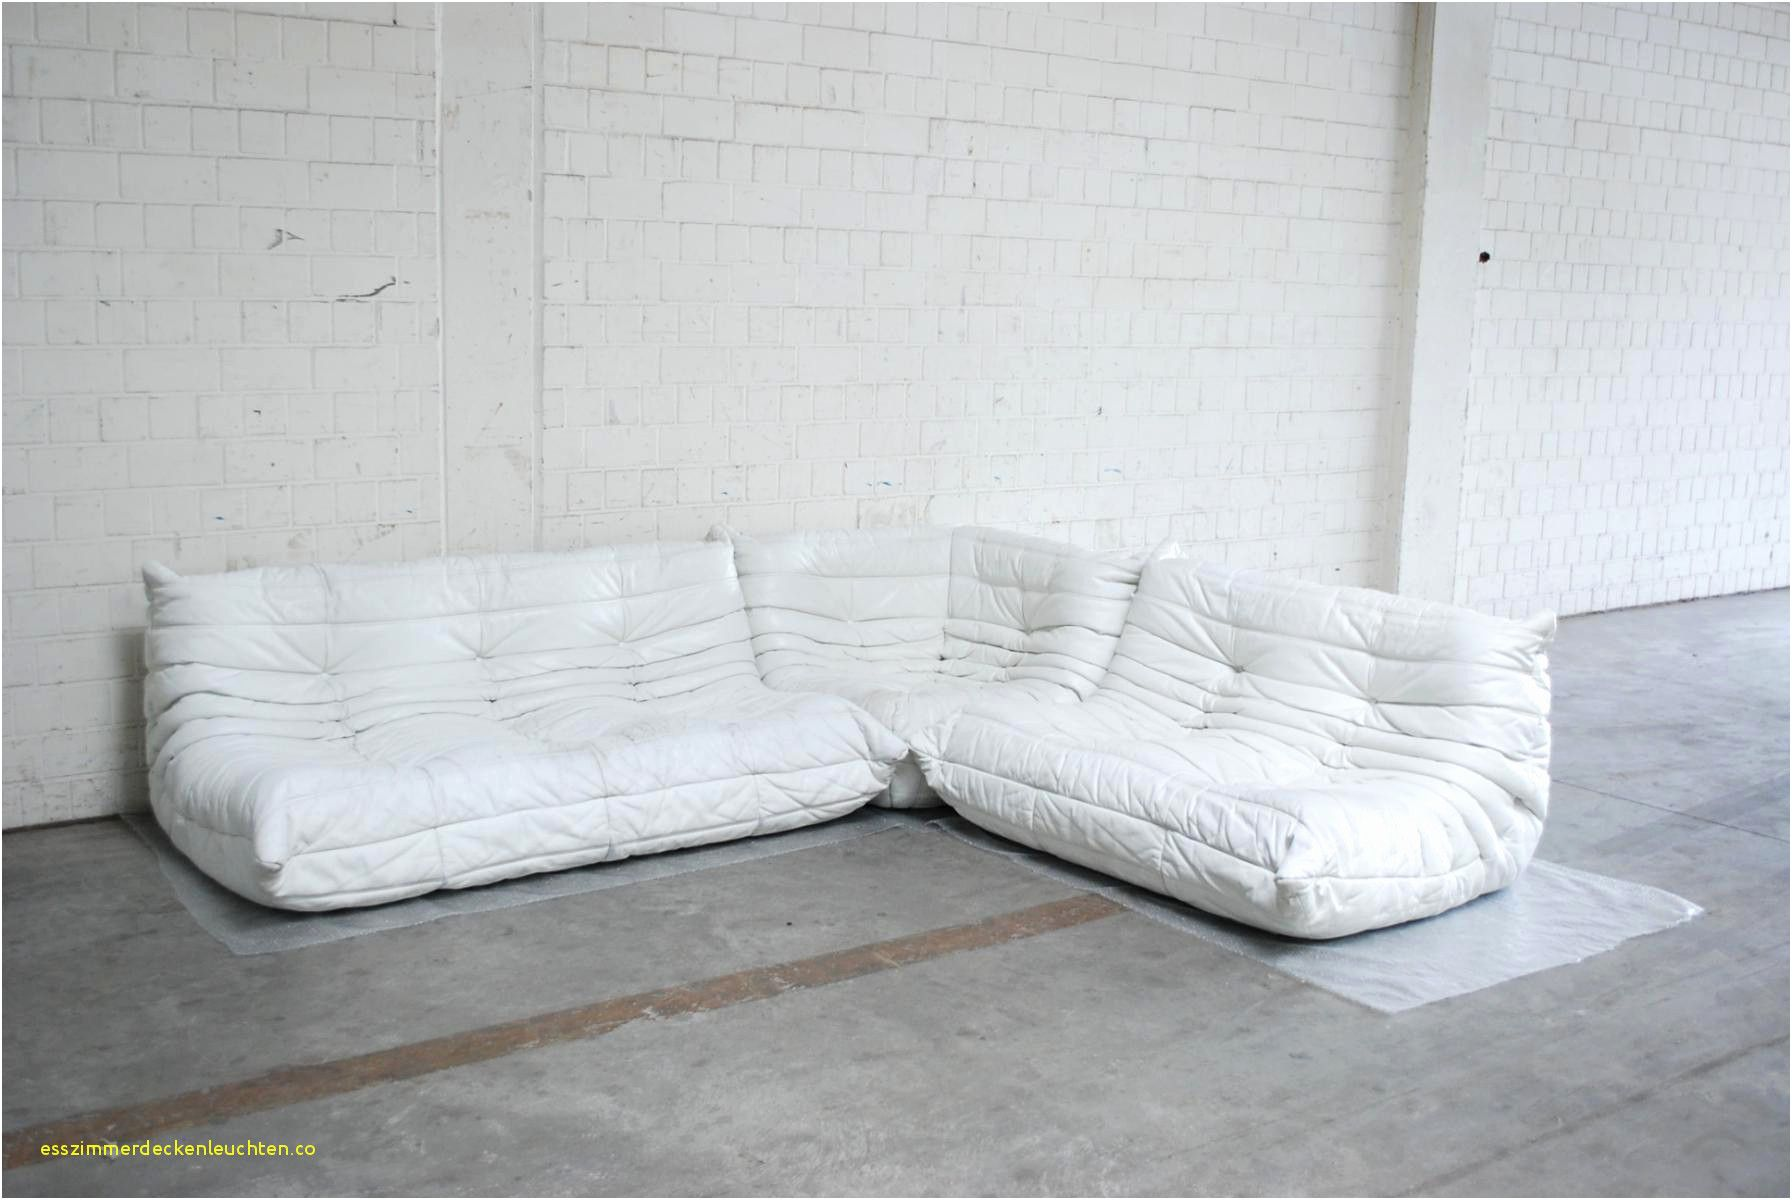 Ikea Jappling Couch Not Sold On The Website But They Have In Store Want To Replace Our Couch With This And Chair With The Club Chairs Sofas Sofa